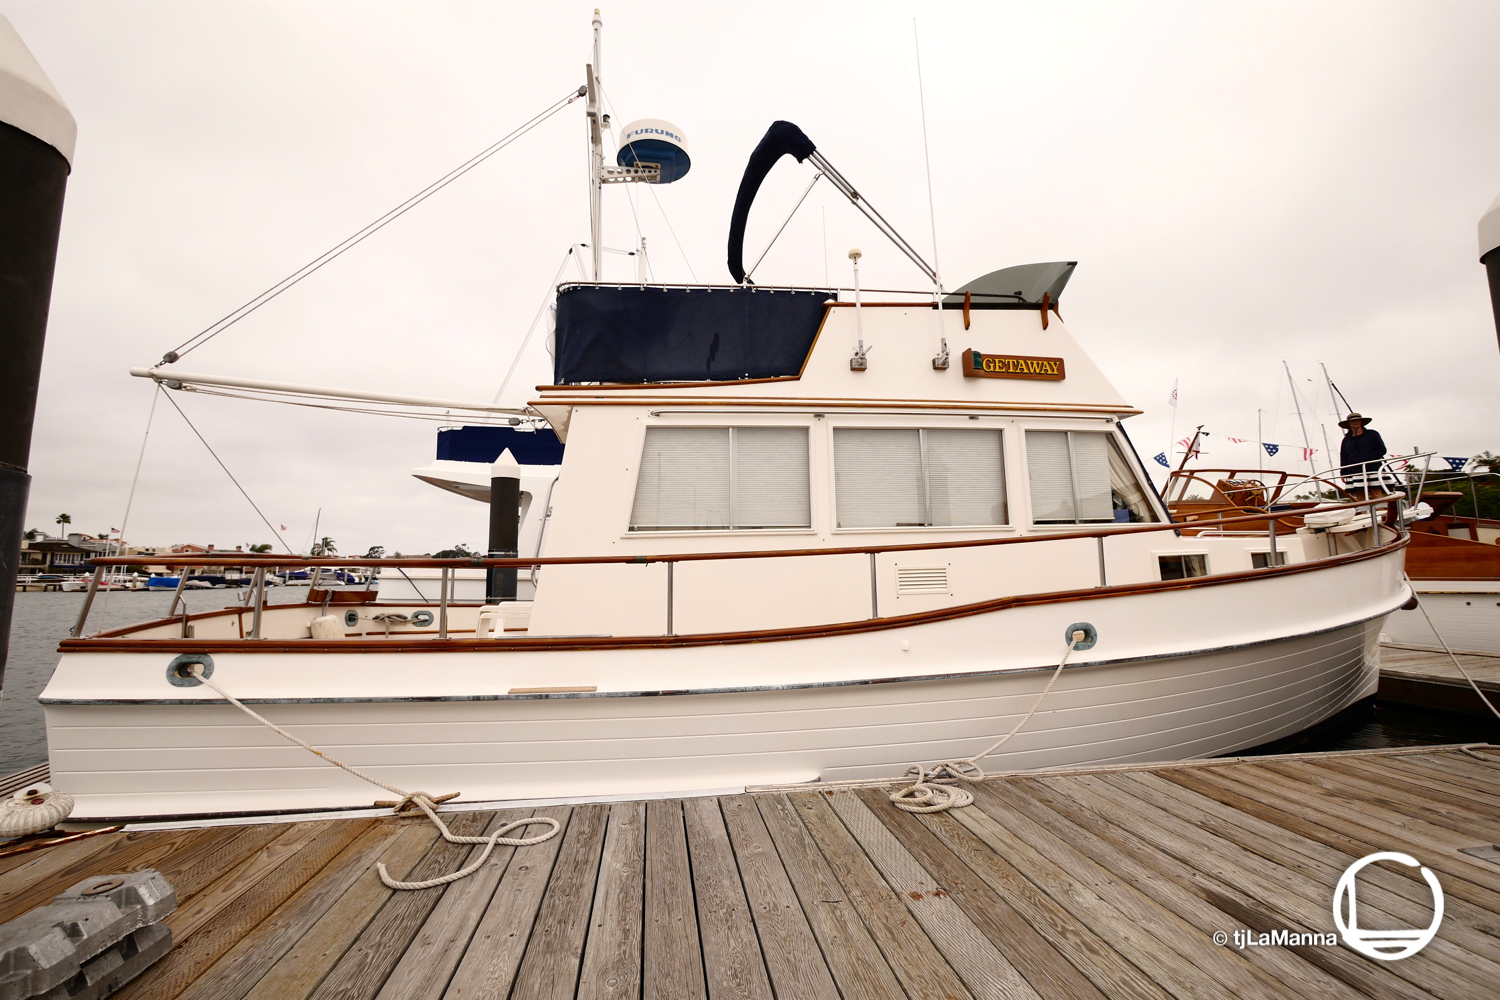 Ah.... memories. This Grand Banks 32 is the same model as my last boat. The image/lines of the boat looks a bit strange due to the ultra-wide angle lens I was using.